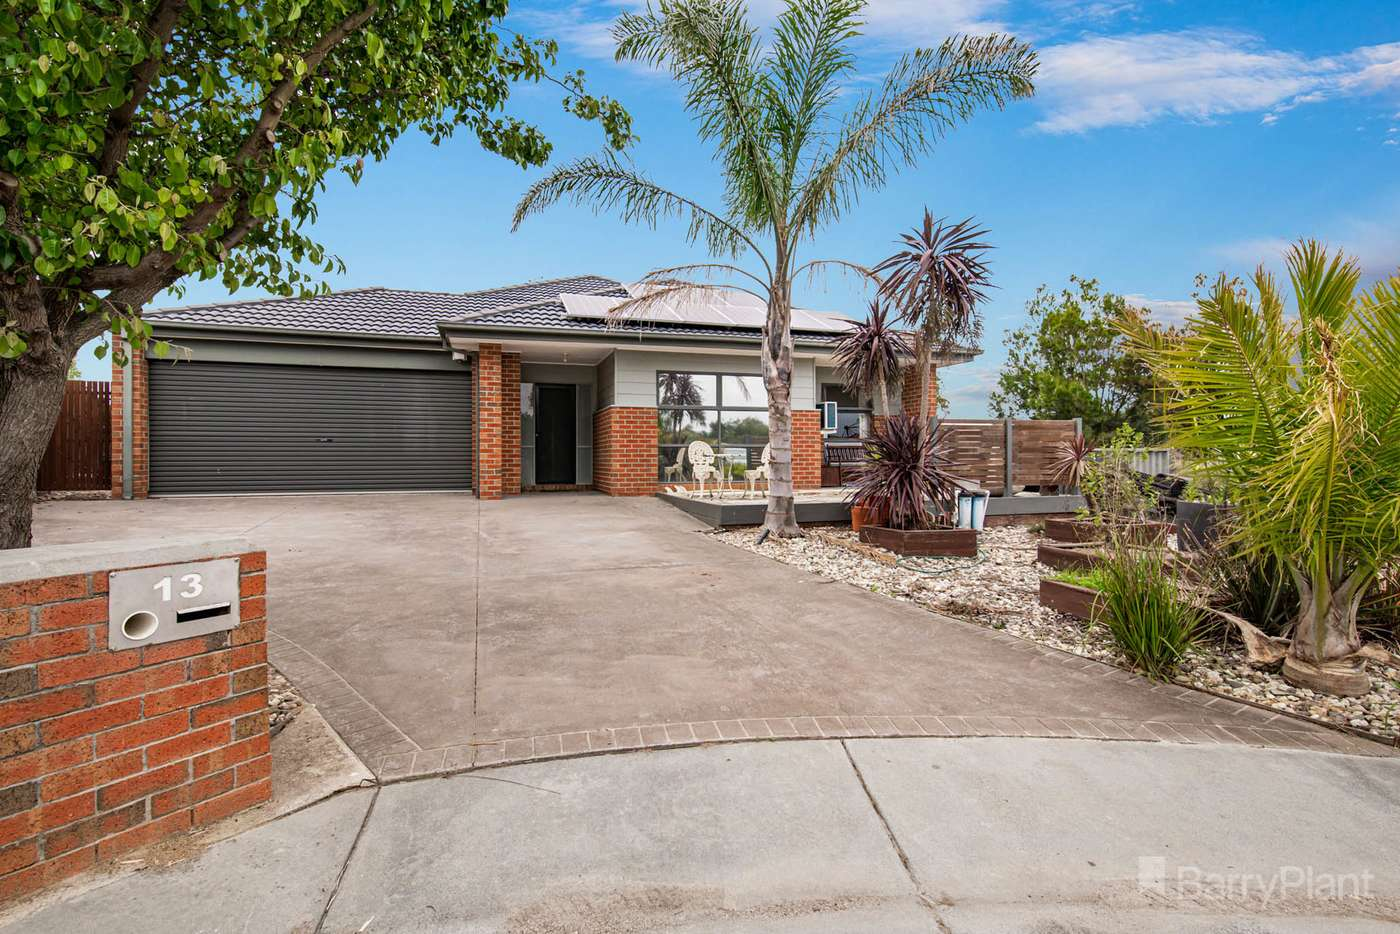 Main view of Homely house listing, 13 Veitch Court, Pakenham VIC 3810